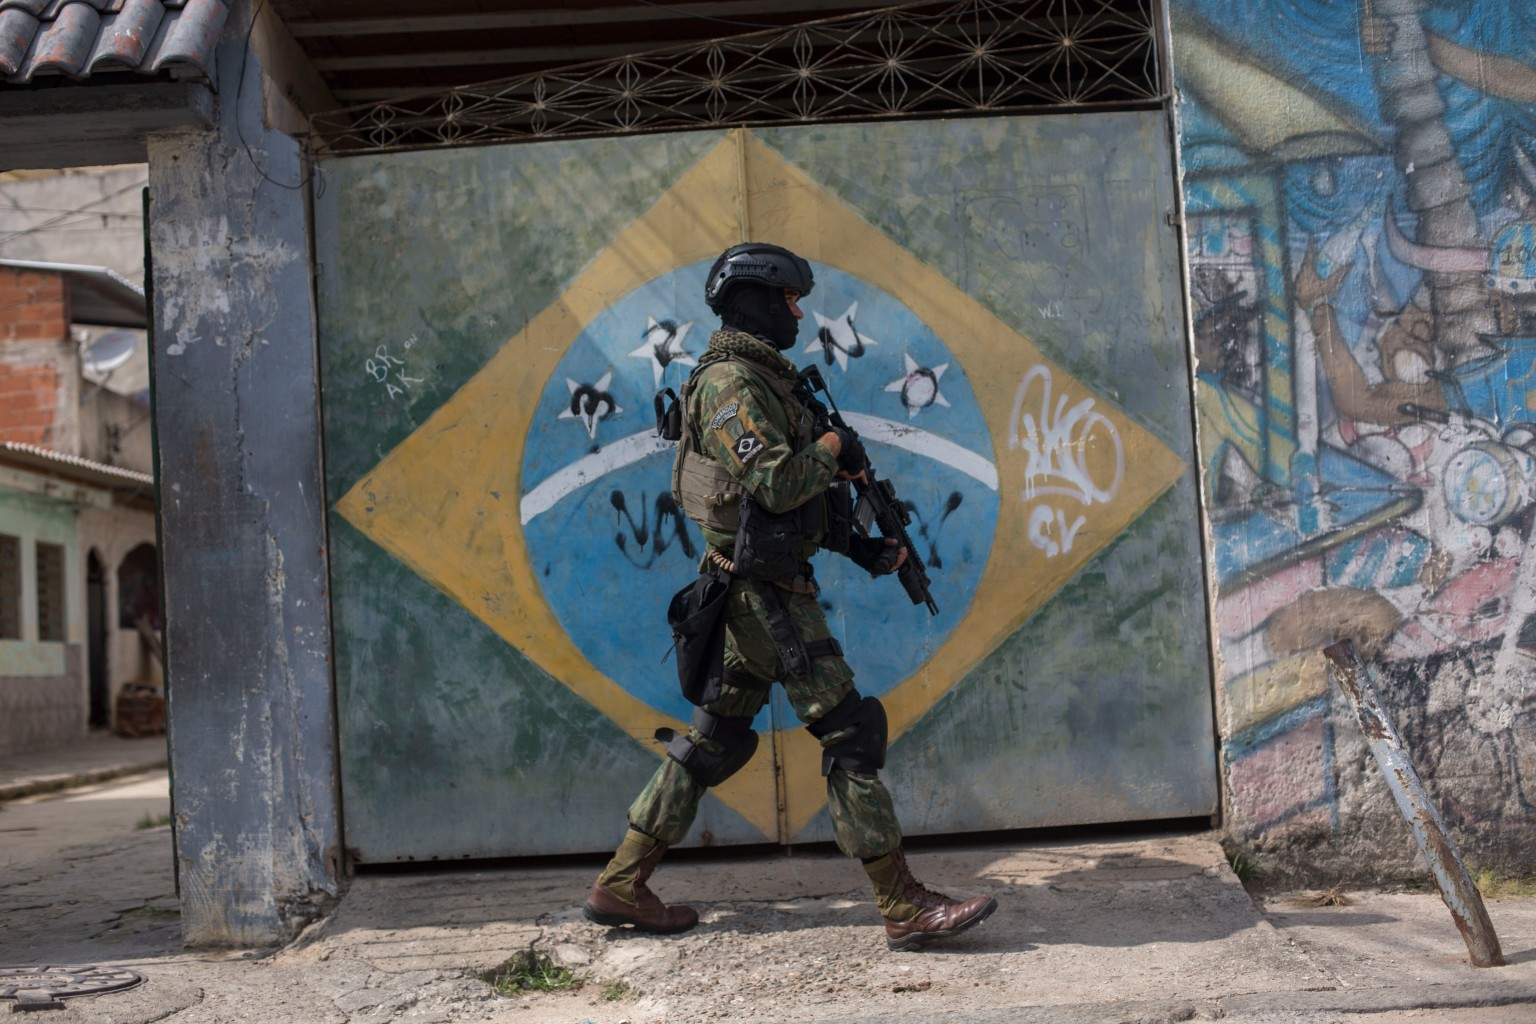 TOPSHOT - A soldier of the Armed Forces, backed by armoured vehicles, aircraft and heavy engineering equipment, takes part in an operation in the violence-plagued favela of Vila Kennedy, in Rio de Janeiro, Brazil, on March 7, 2018. The Brazilian army launched a new operation on a favela in Rio de Janeiro, the third since President Michel Temer ordered the military to take over the command of security in the whole of Rio state to fight organized crime. / AFP PHOTO / Mauro PIMENTEL        (Photo credit should read MAURO PIMENTEL/AFP/Getty Images)